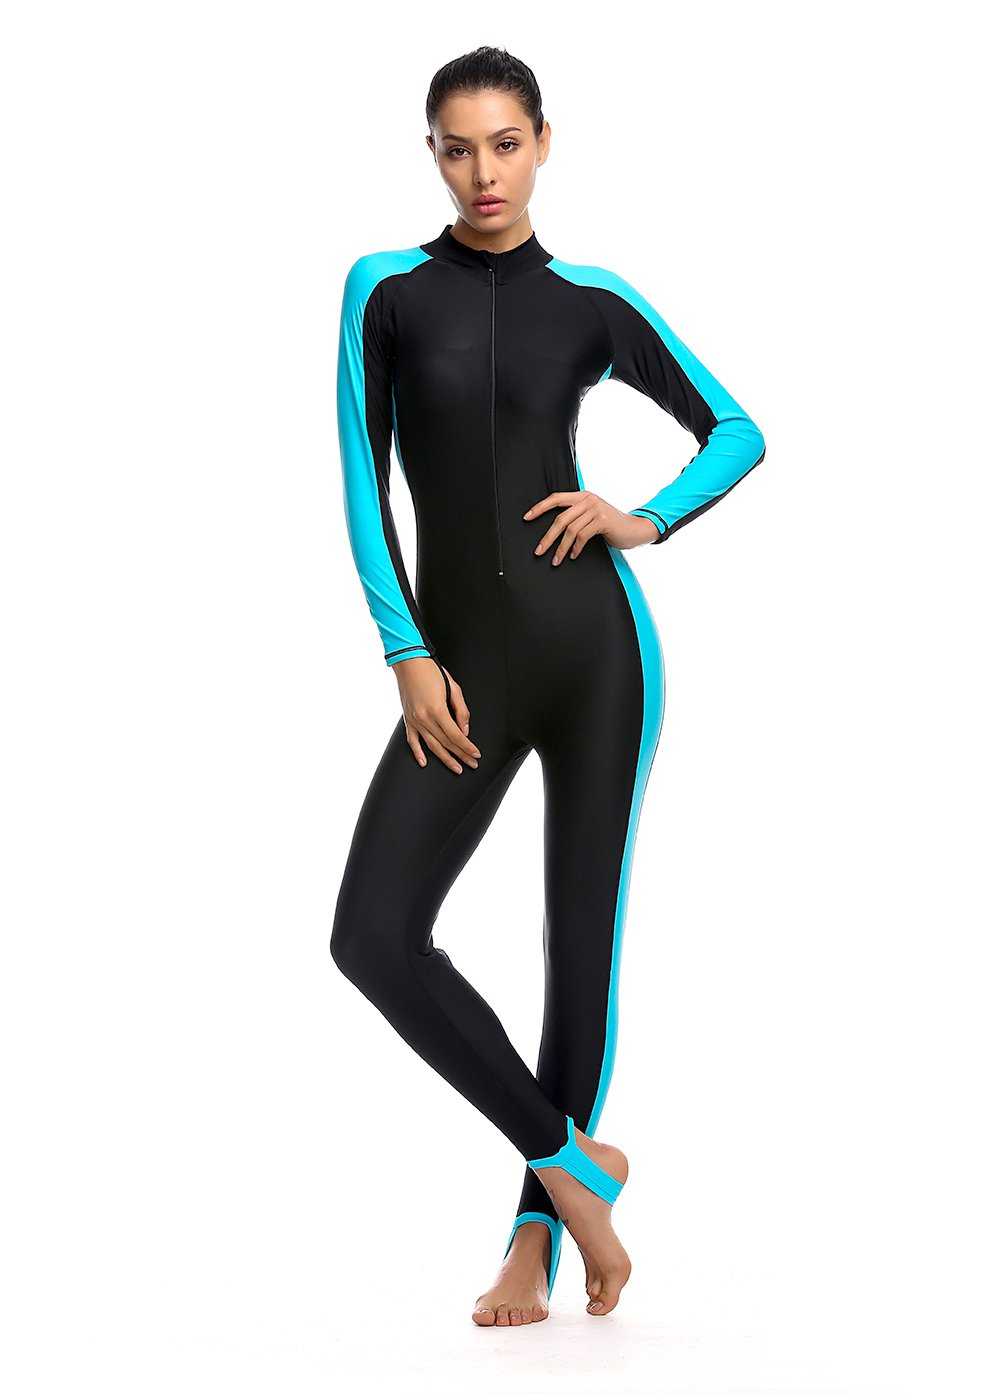 72611c85cb4 Women Fitness Full Length Wetsuit Surfing Suit One Piece Long Sleeve  JumpSuit Surfing Diving Bodyboarding: Amazon.co.uk: Sports & Outdoors